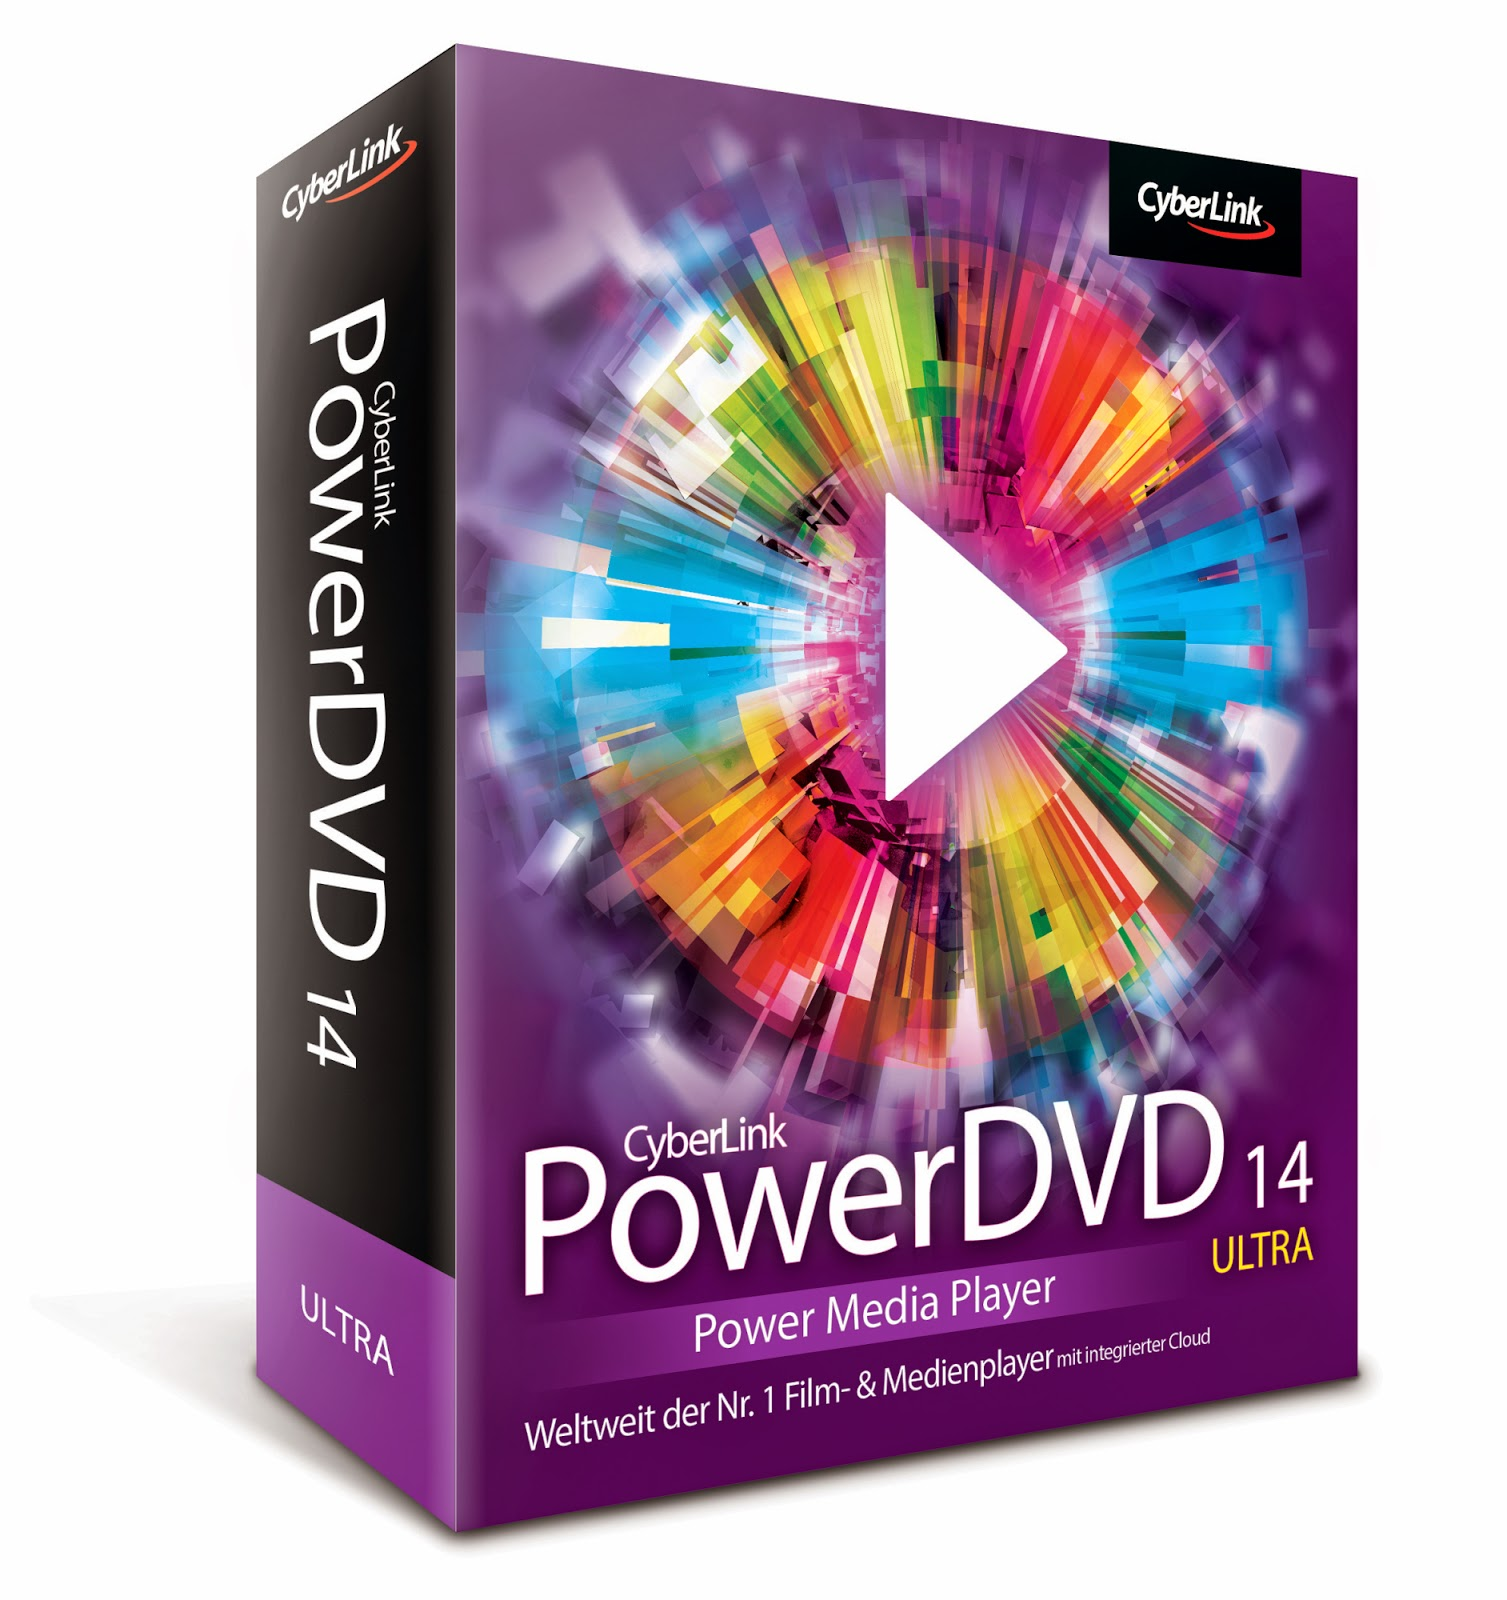 Crack Serial Key PowerDVD 14 Ultra Full Version Free Download